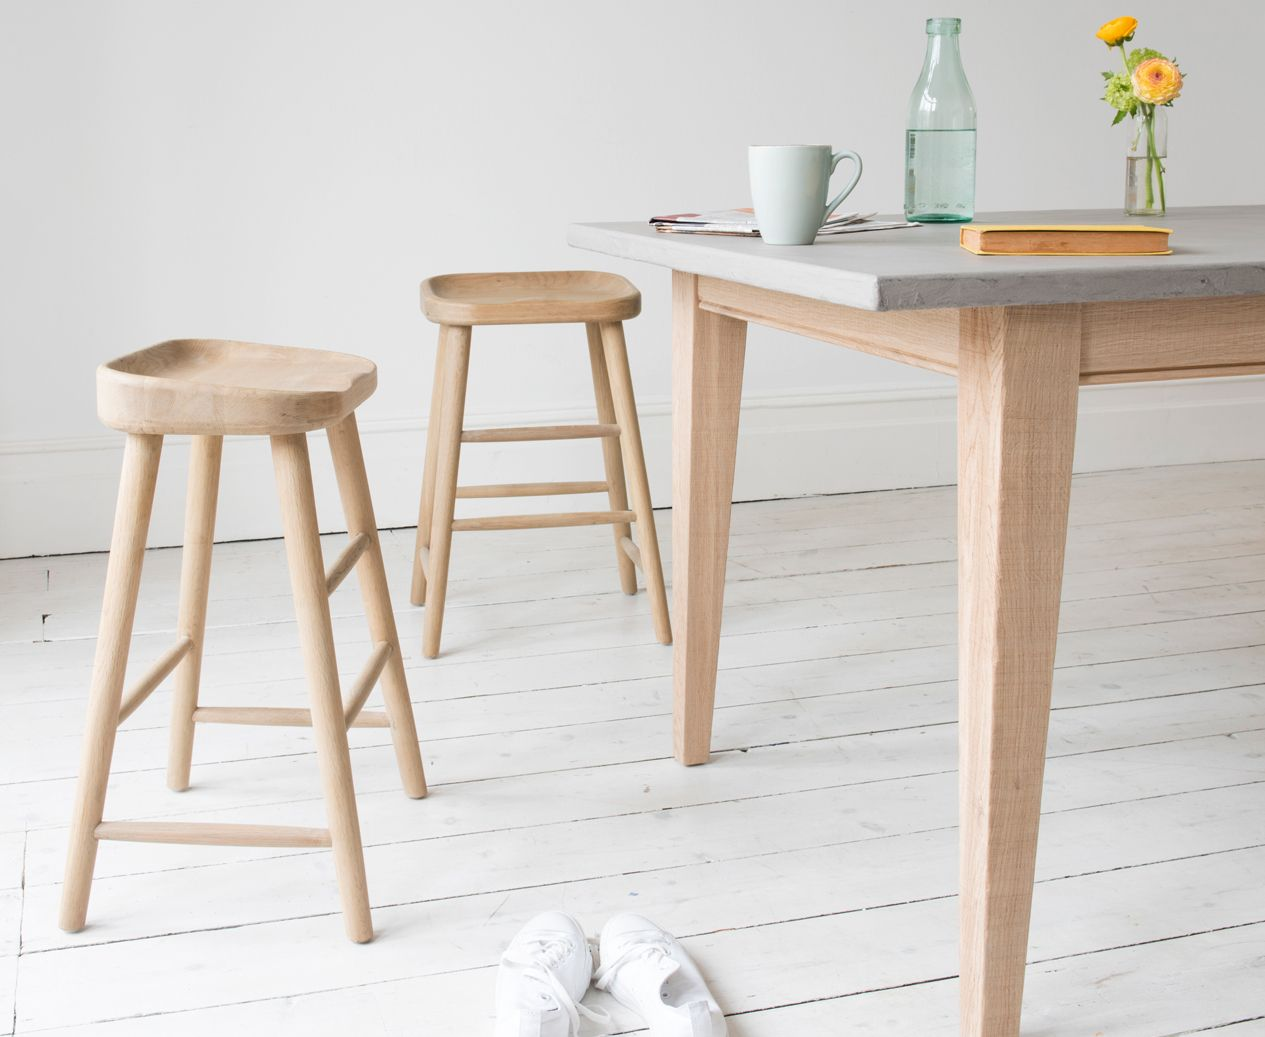 4 stools for kitchen island | home | Pinterest | Wooden kitchen ...